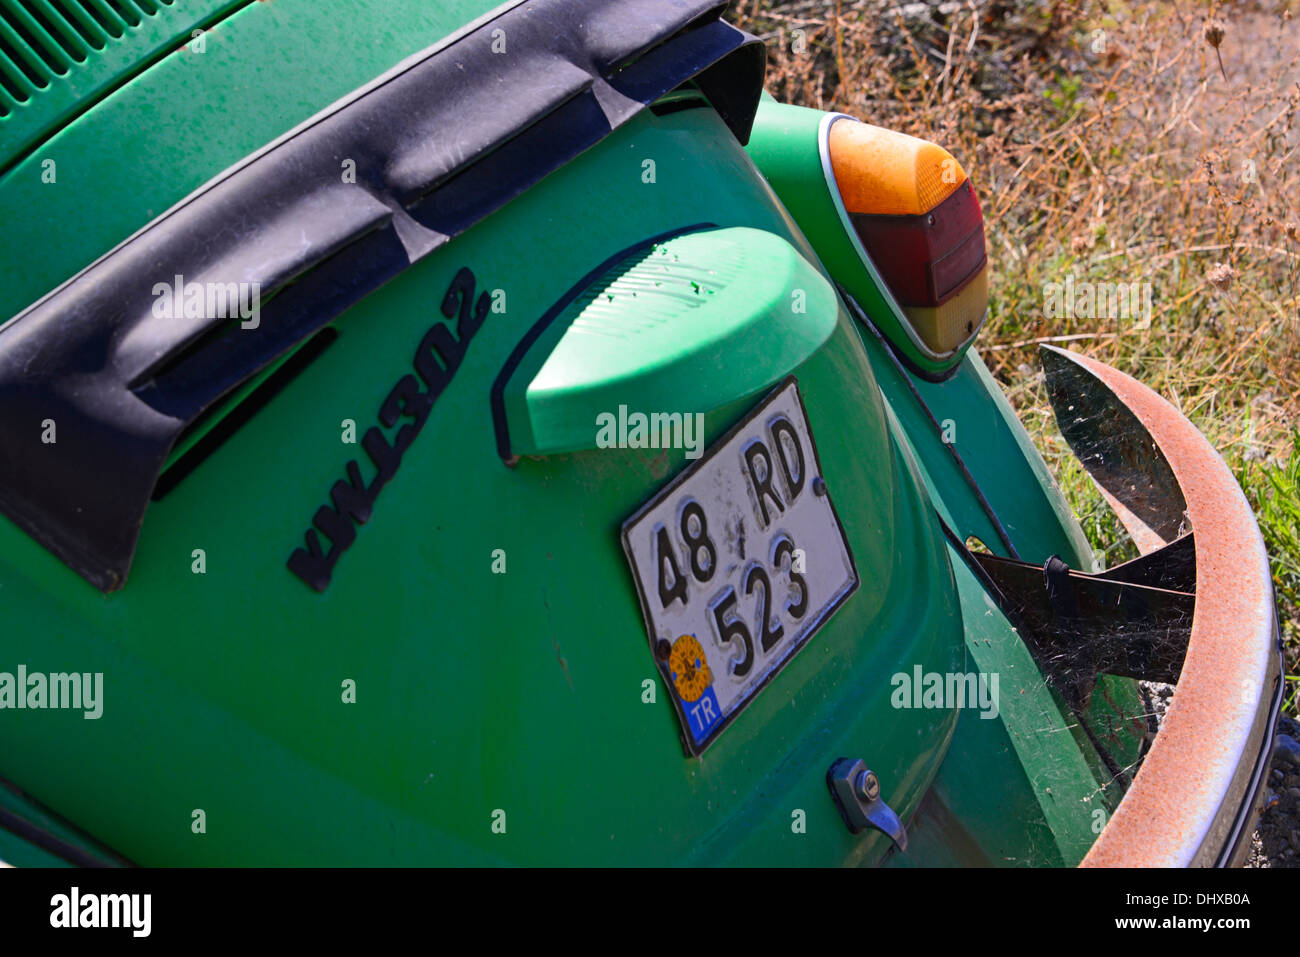 Rear view of a Volkwagen 'Beetle 1302'. - Stock Image